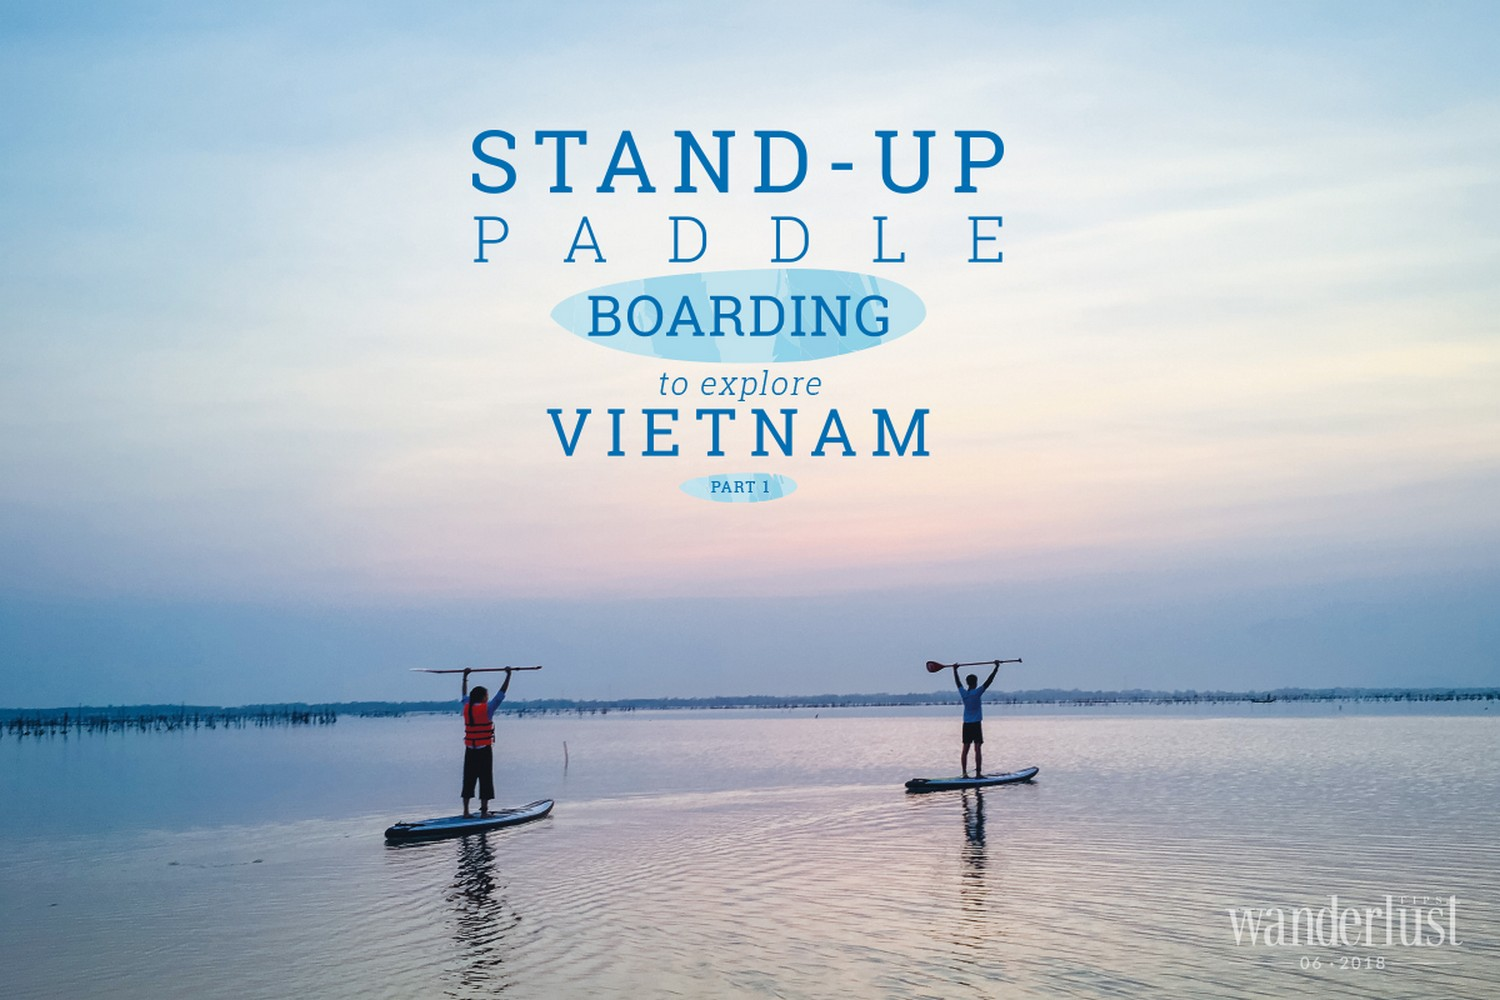 Wanderlust Tips Magazine   Stand – up paddle boarding to explore Vietnam (part 1)